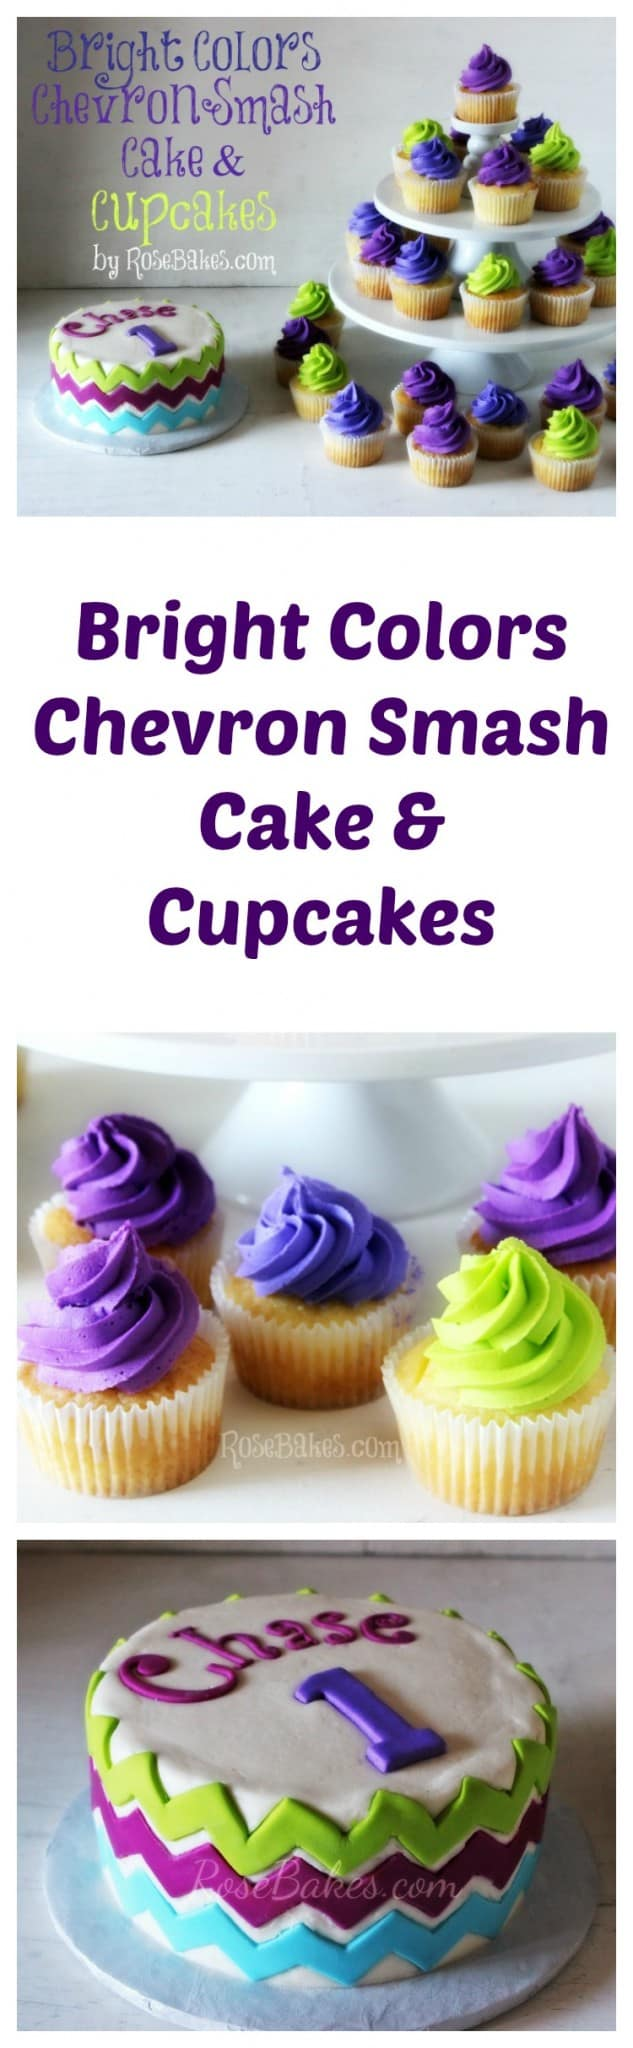 Bright Colors Chevron Smash Cake and Cupcakes RoseBakes